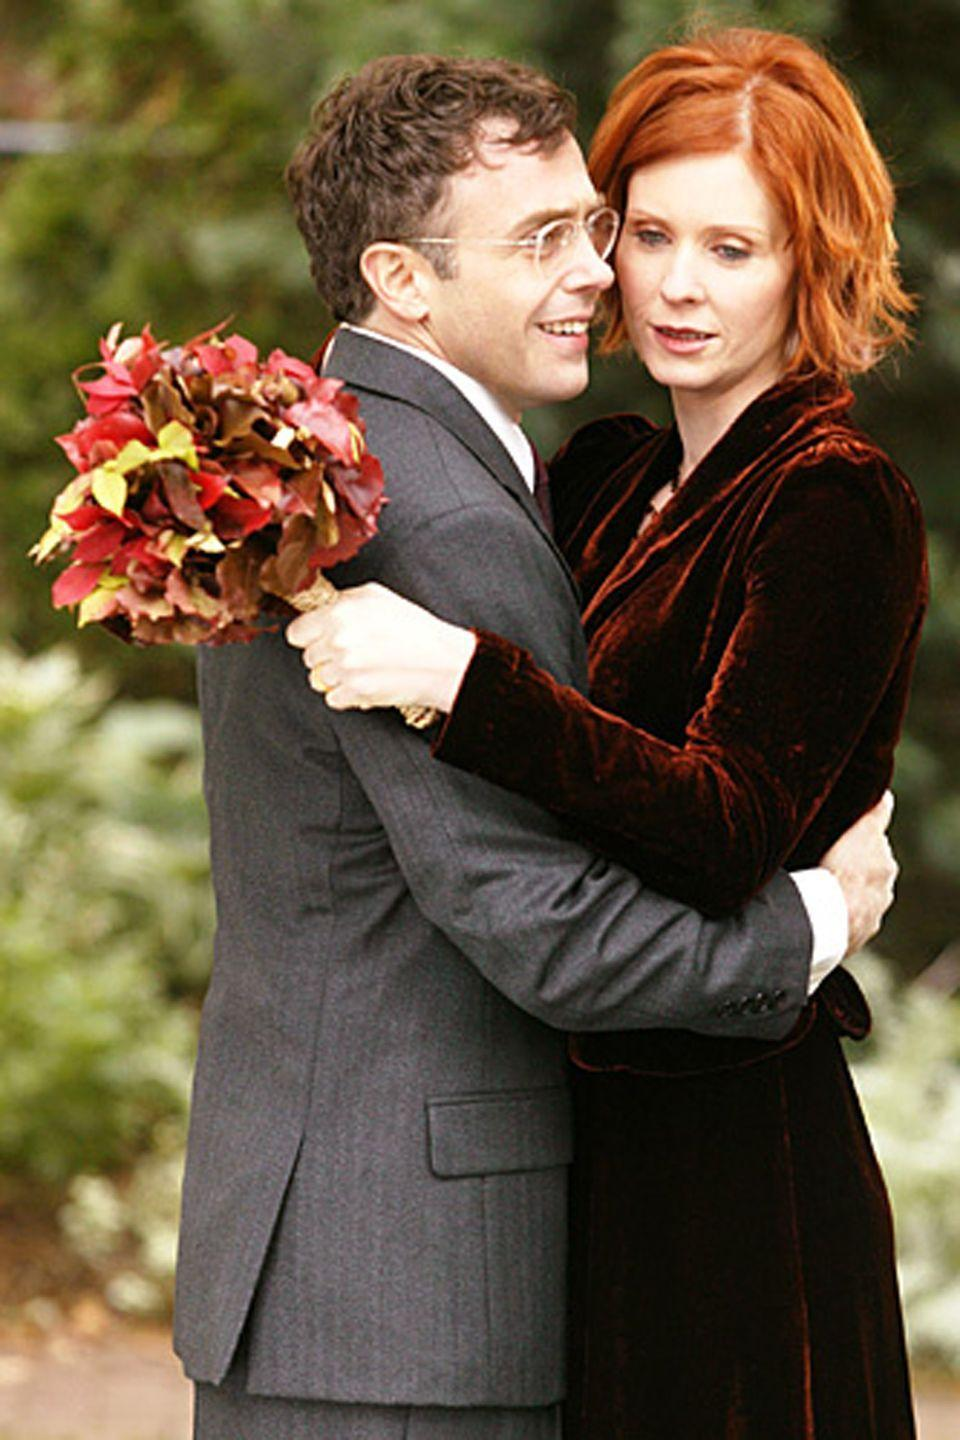 <p>After an on-again, off-again relationship, Miranda and Steve finally married in season 6. For the occasion, Miranda bucked convention by opting for a red velvet wedding dress.</p>